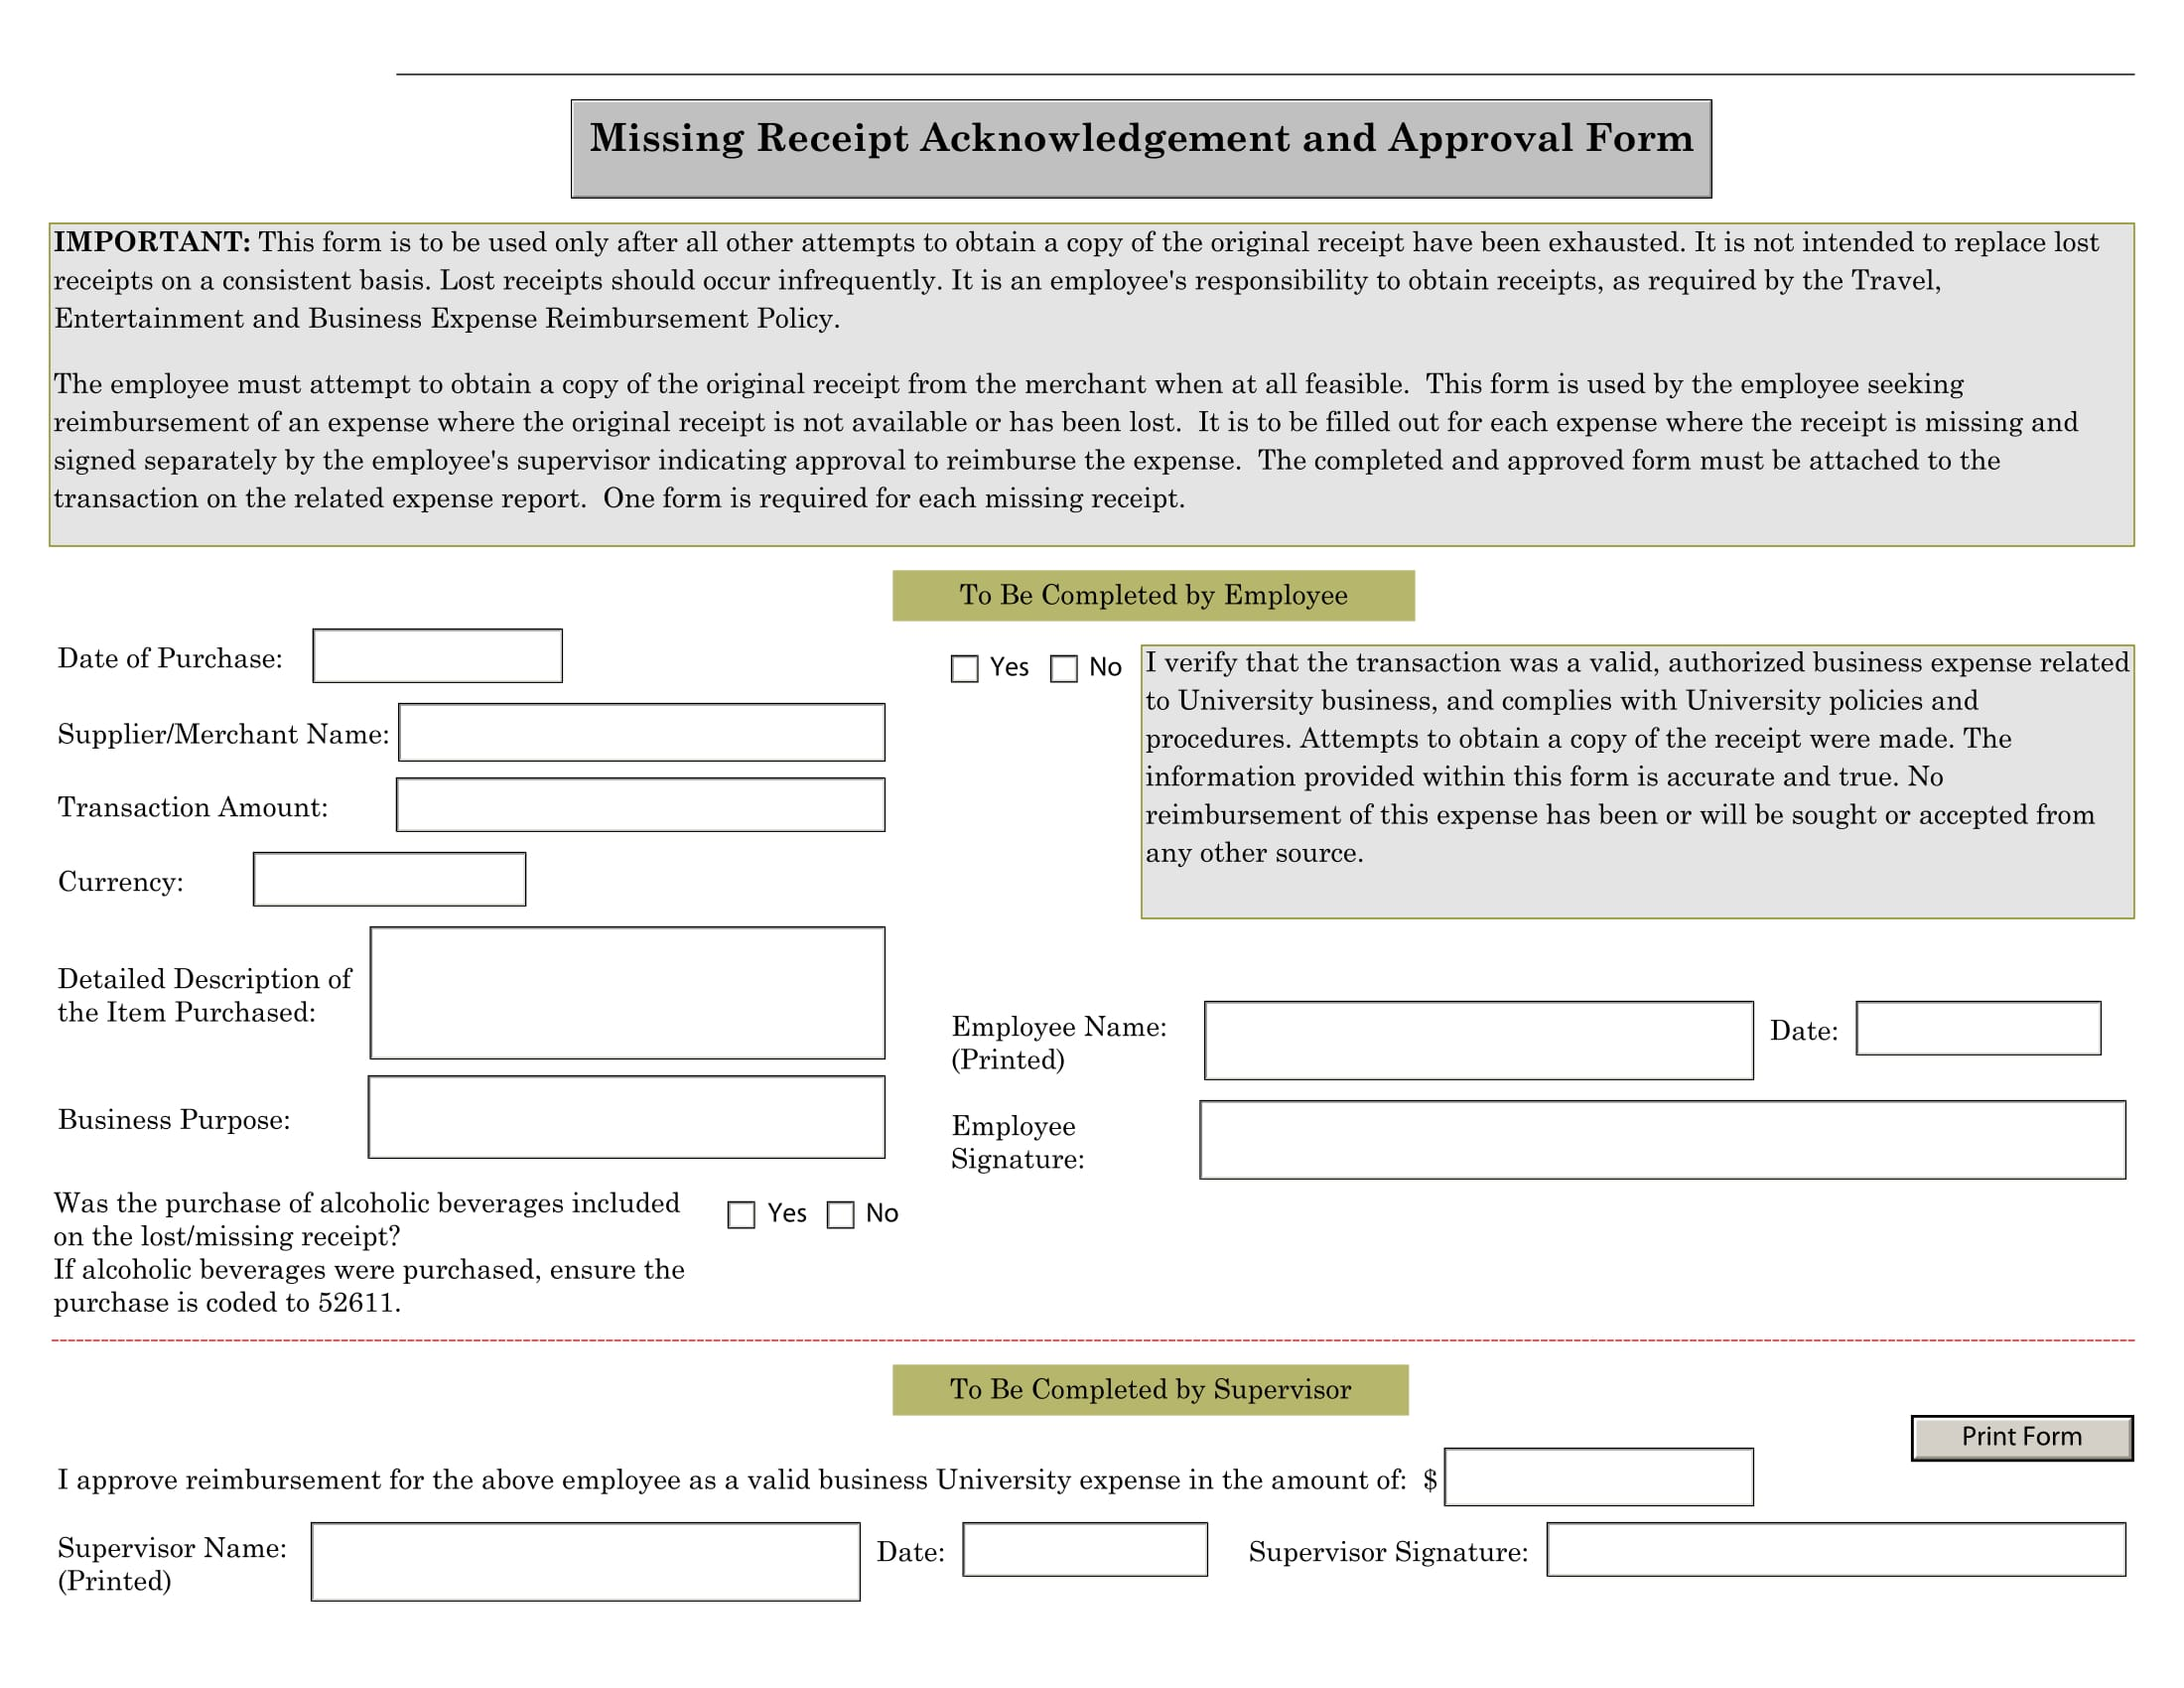 missing receipt acknowledgement and approval form 1